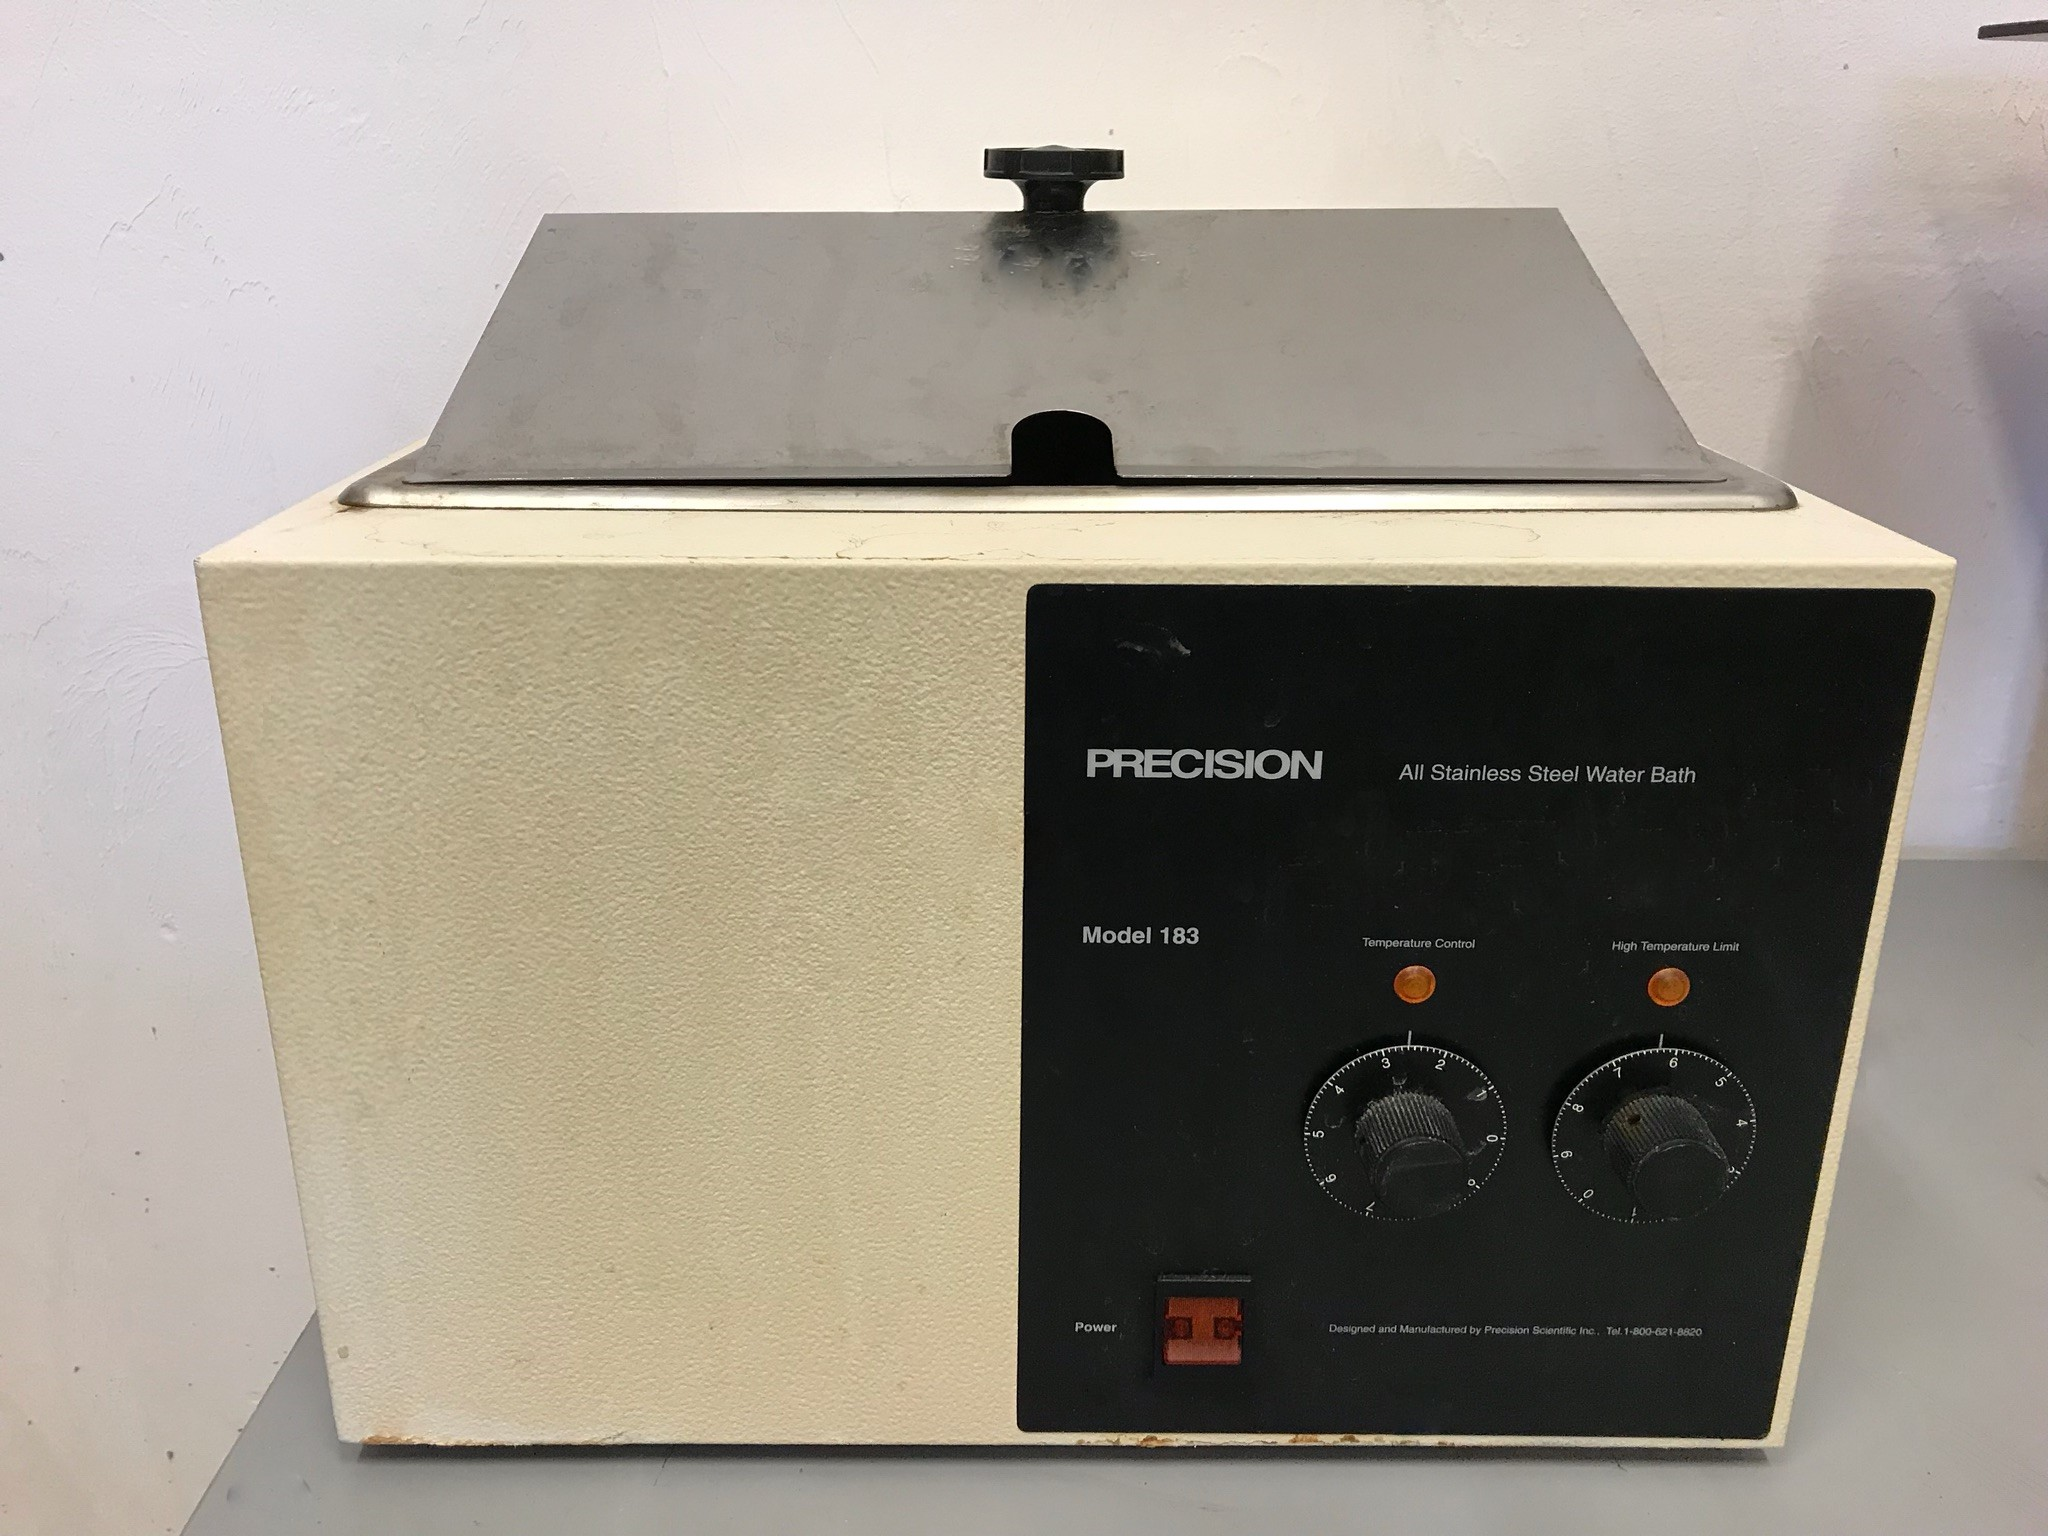 Precision 183 General Purpose Water Bath